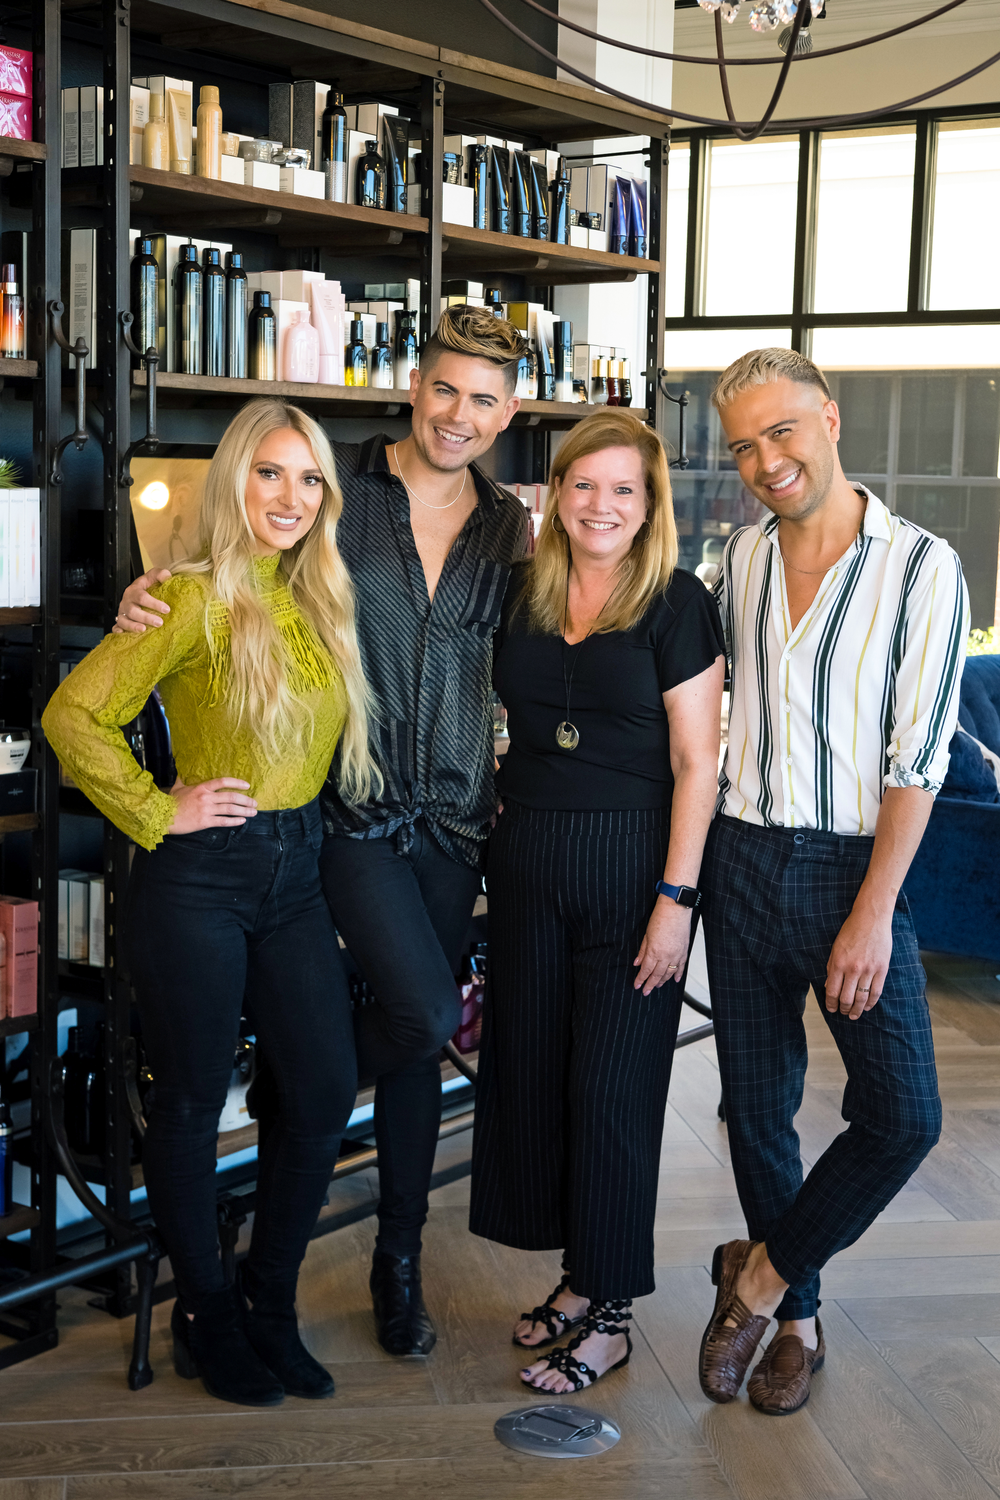 <p>Taylor Miller, Cameron Kepford and Ramiro Corrales, owners of Haus of Heir in Davenport, Iowa, with Stacey Soble at&nbsp;the photoshoot with photographer Karen Bishop.&nbsp;</p>